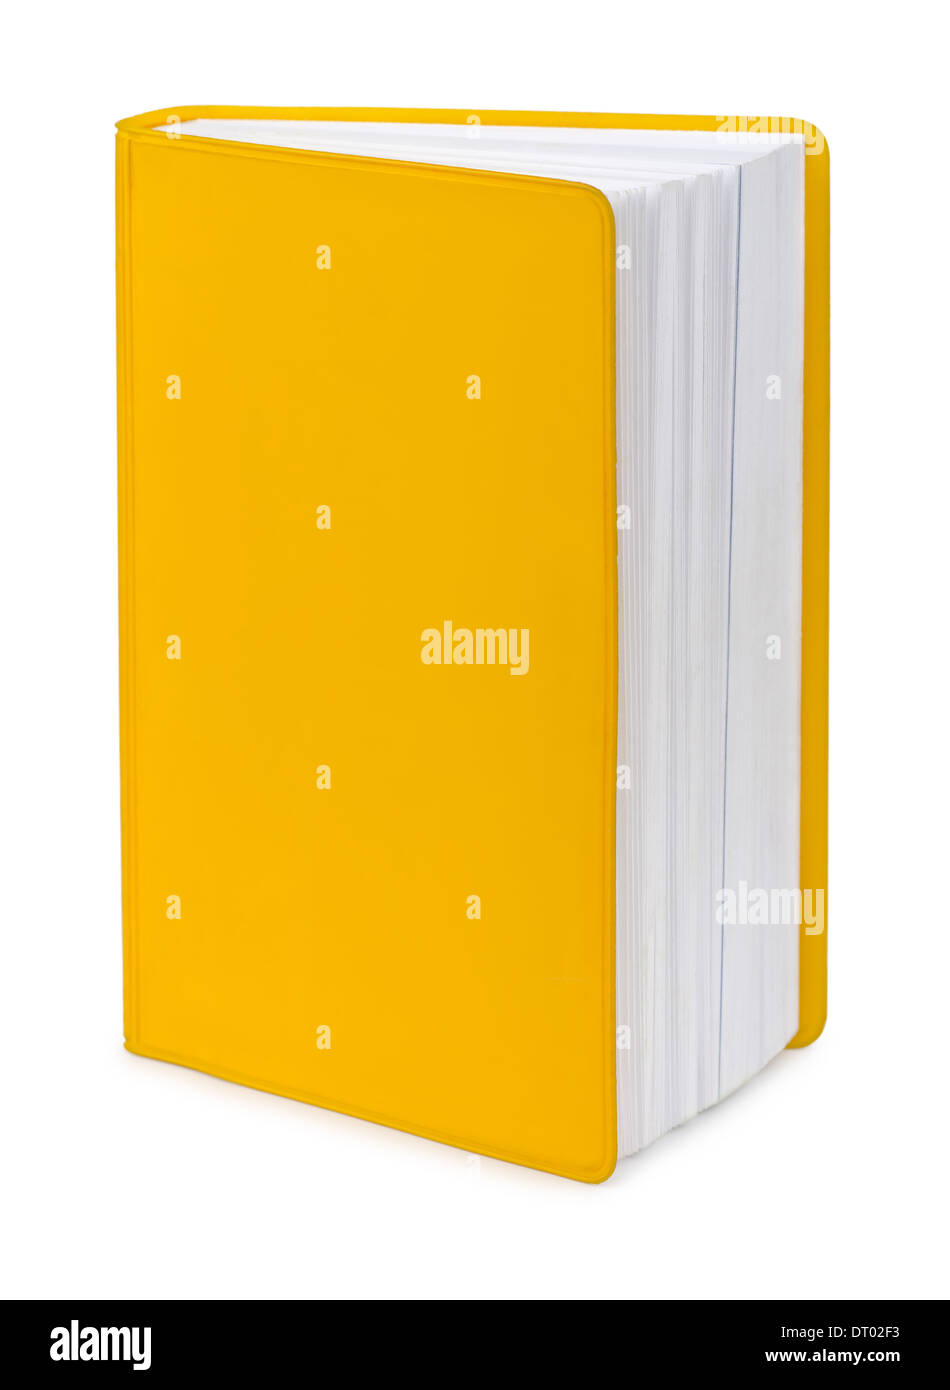 Livre jaune blanc isolated on white Photo Stock